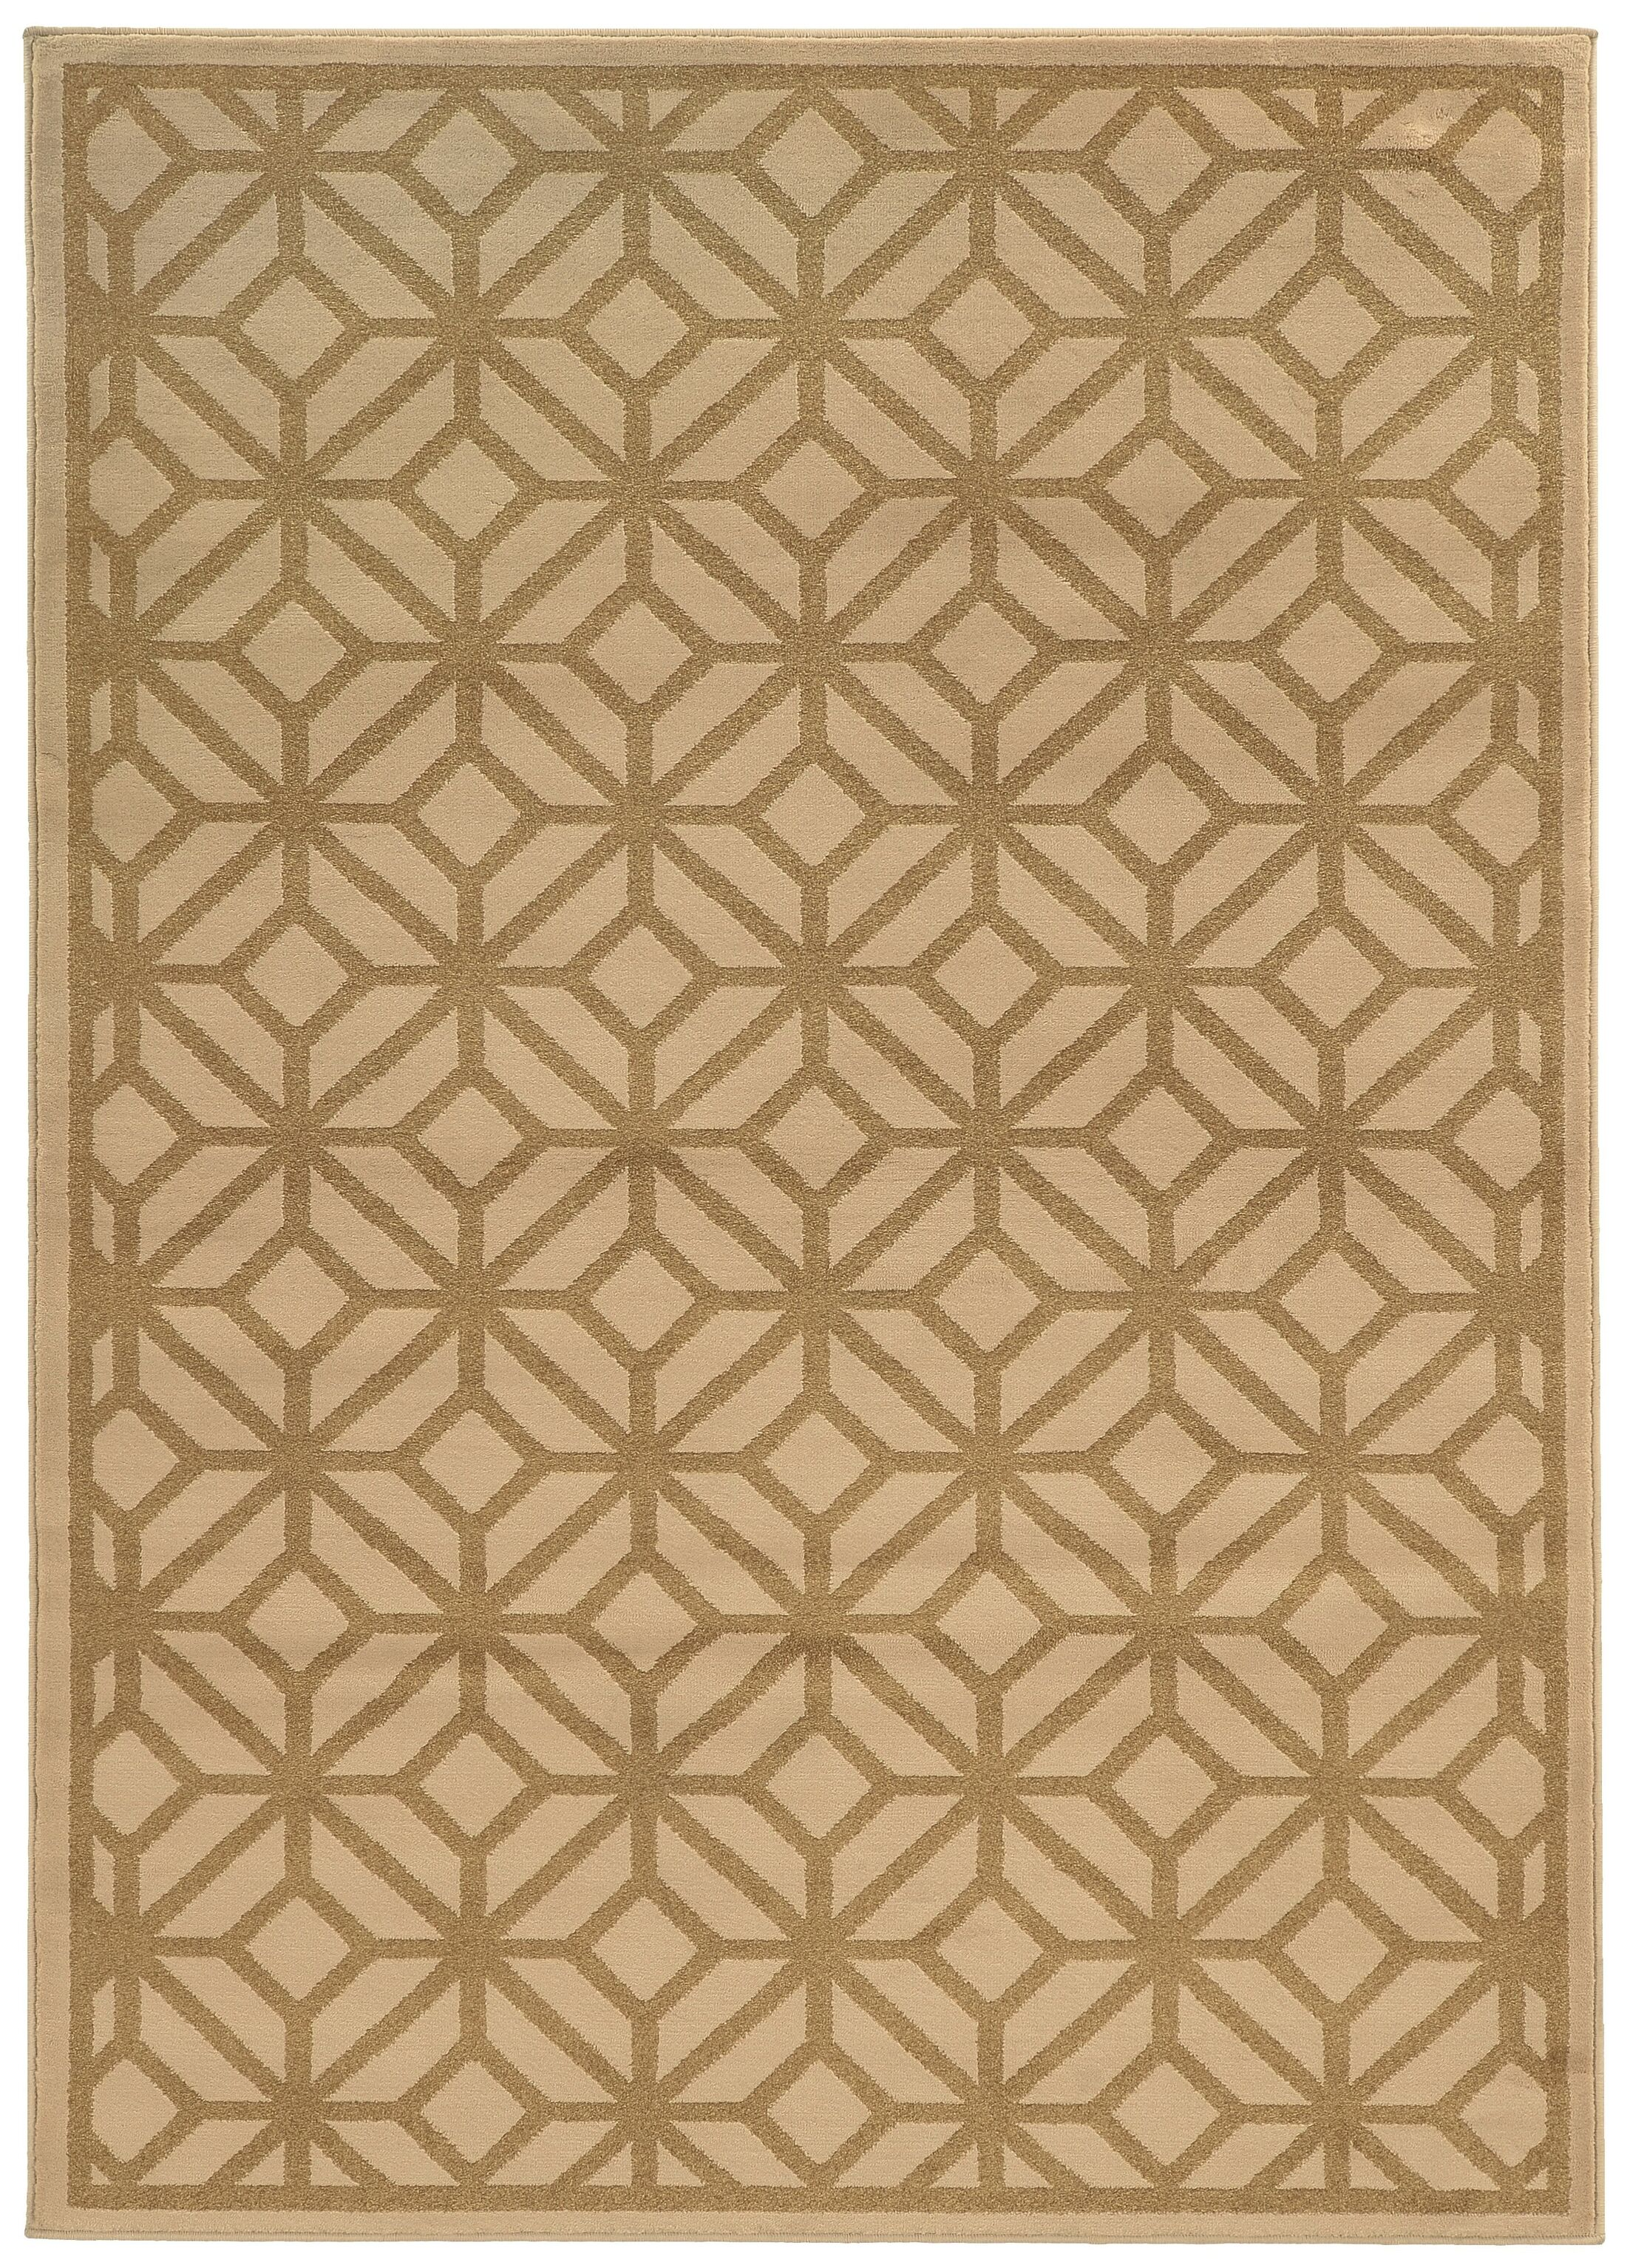 Halloran Beige/Tan Area Rug Rug Size: Rectangle 5'3